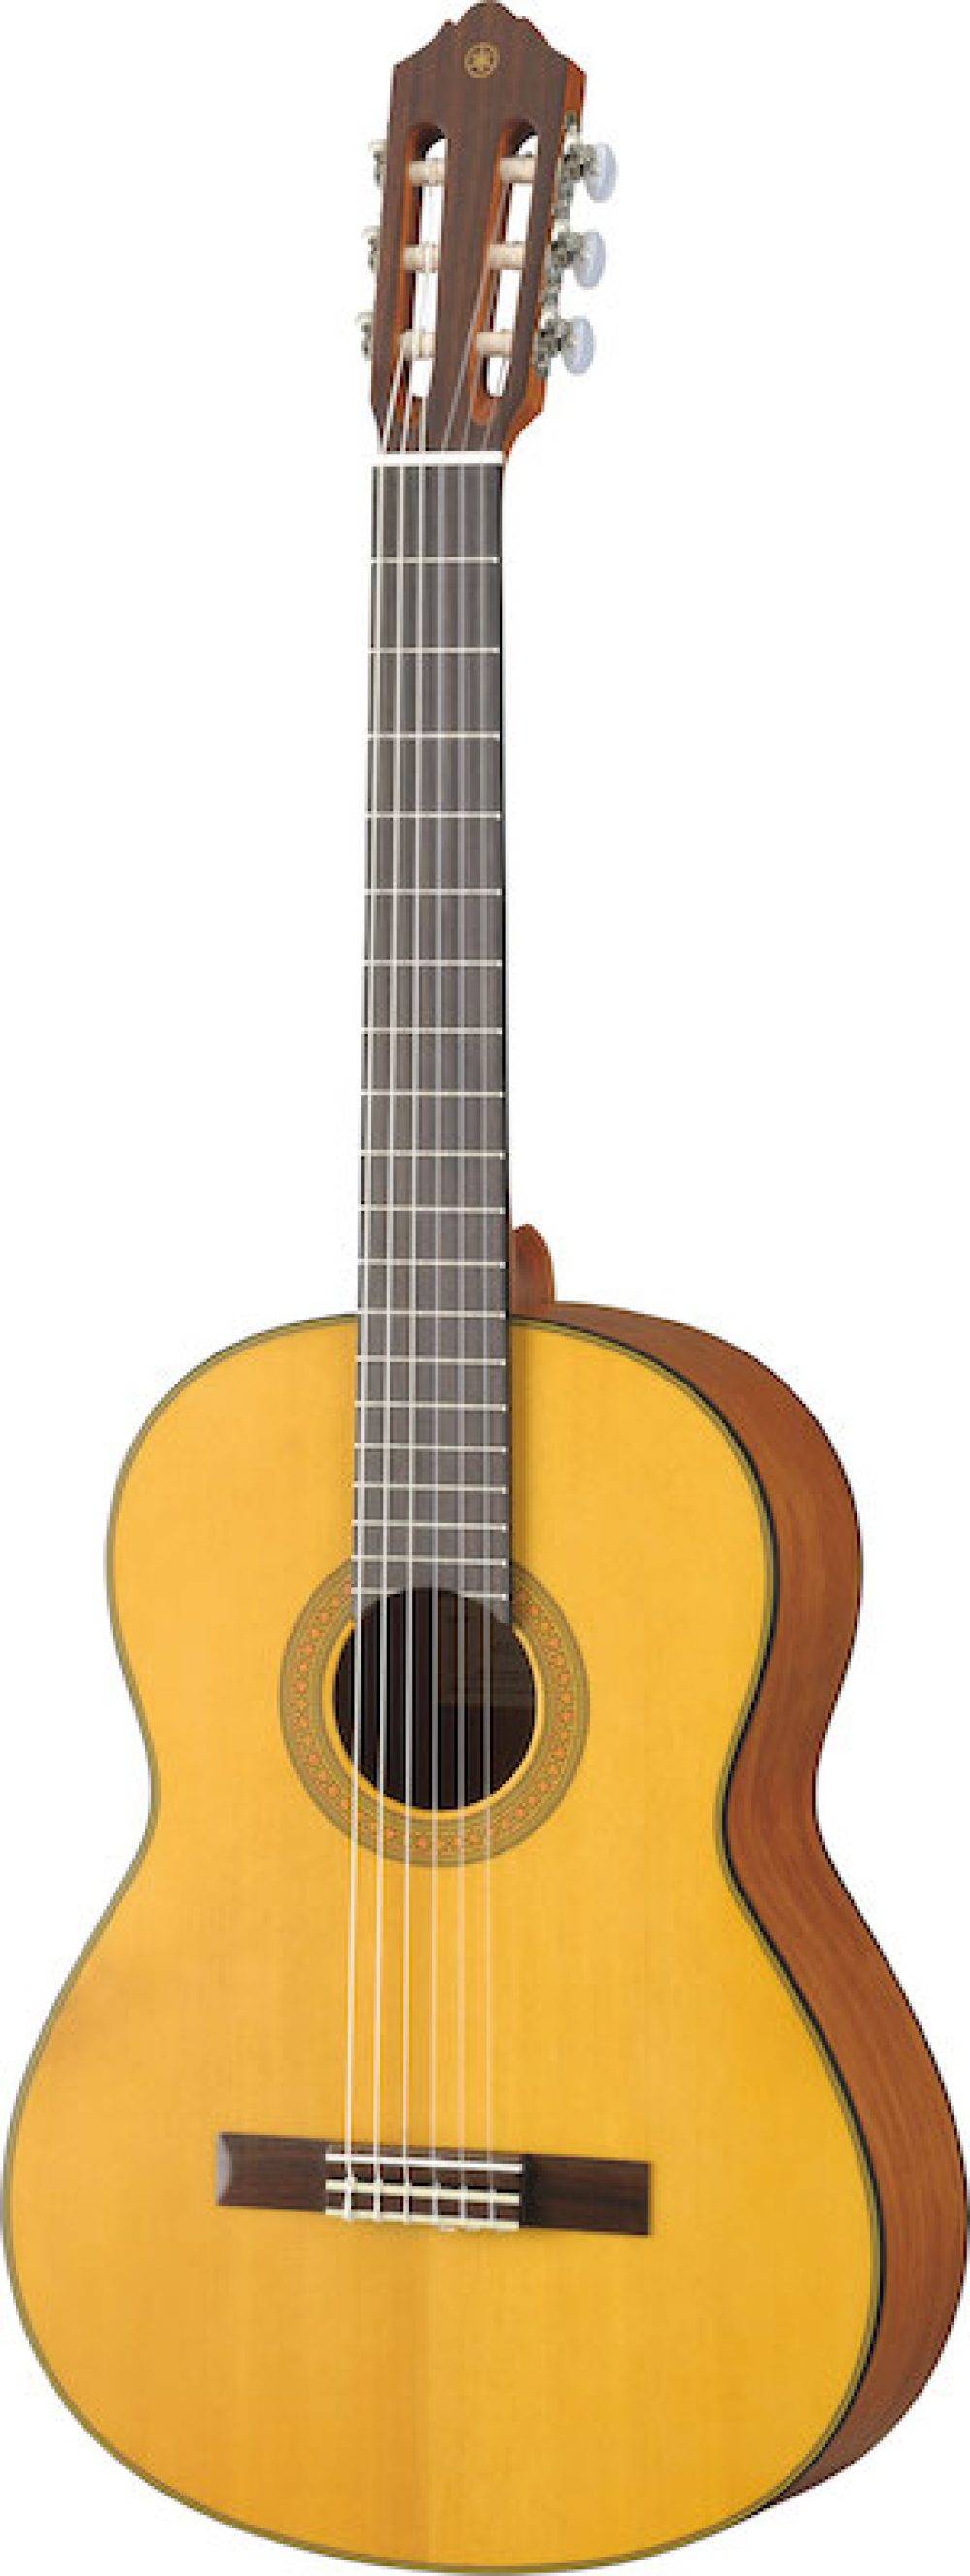 Yamaha CG122MS Classical Nylon Guitar